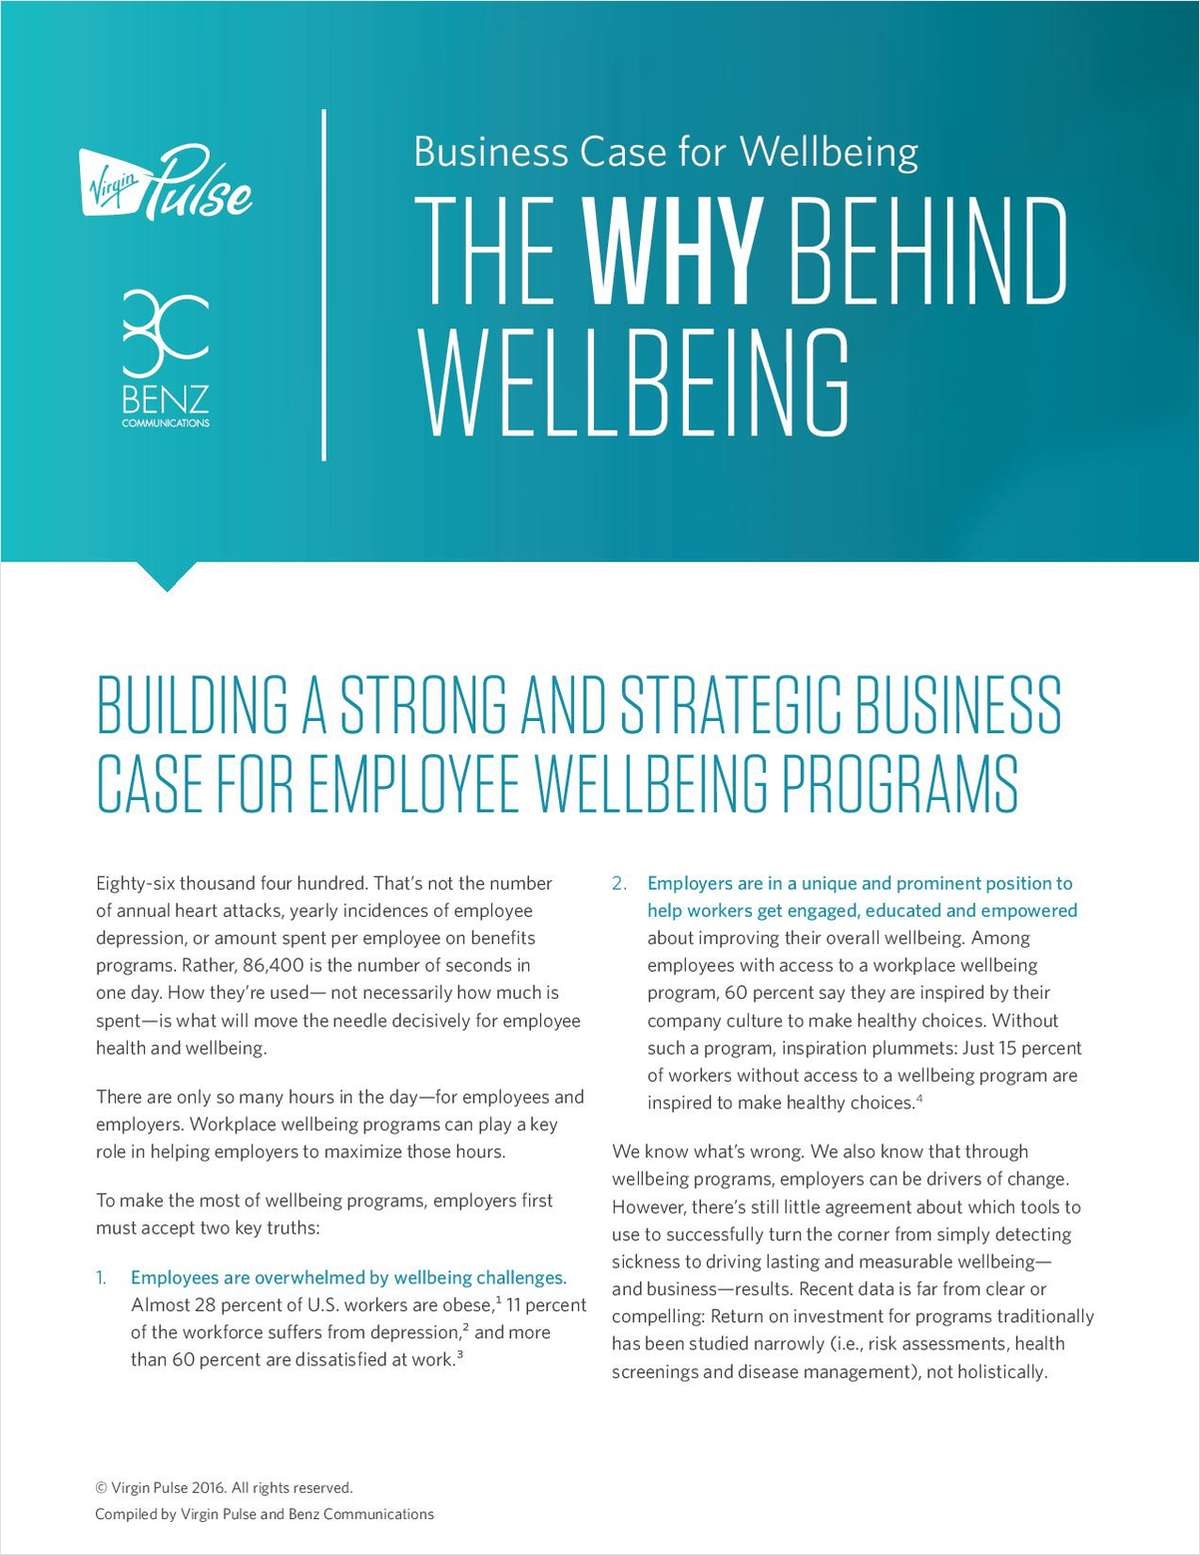 The Why Behind Wellbeing